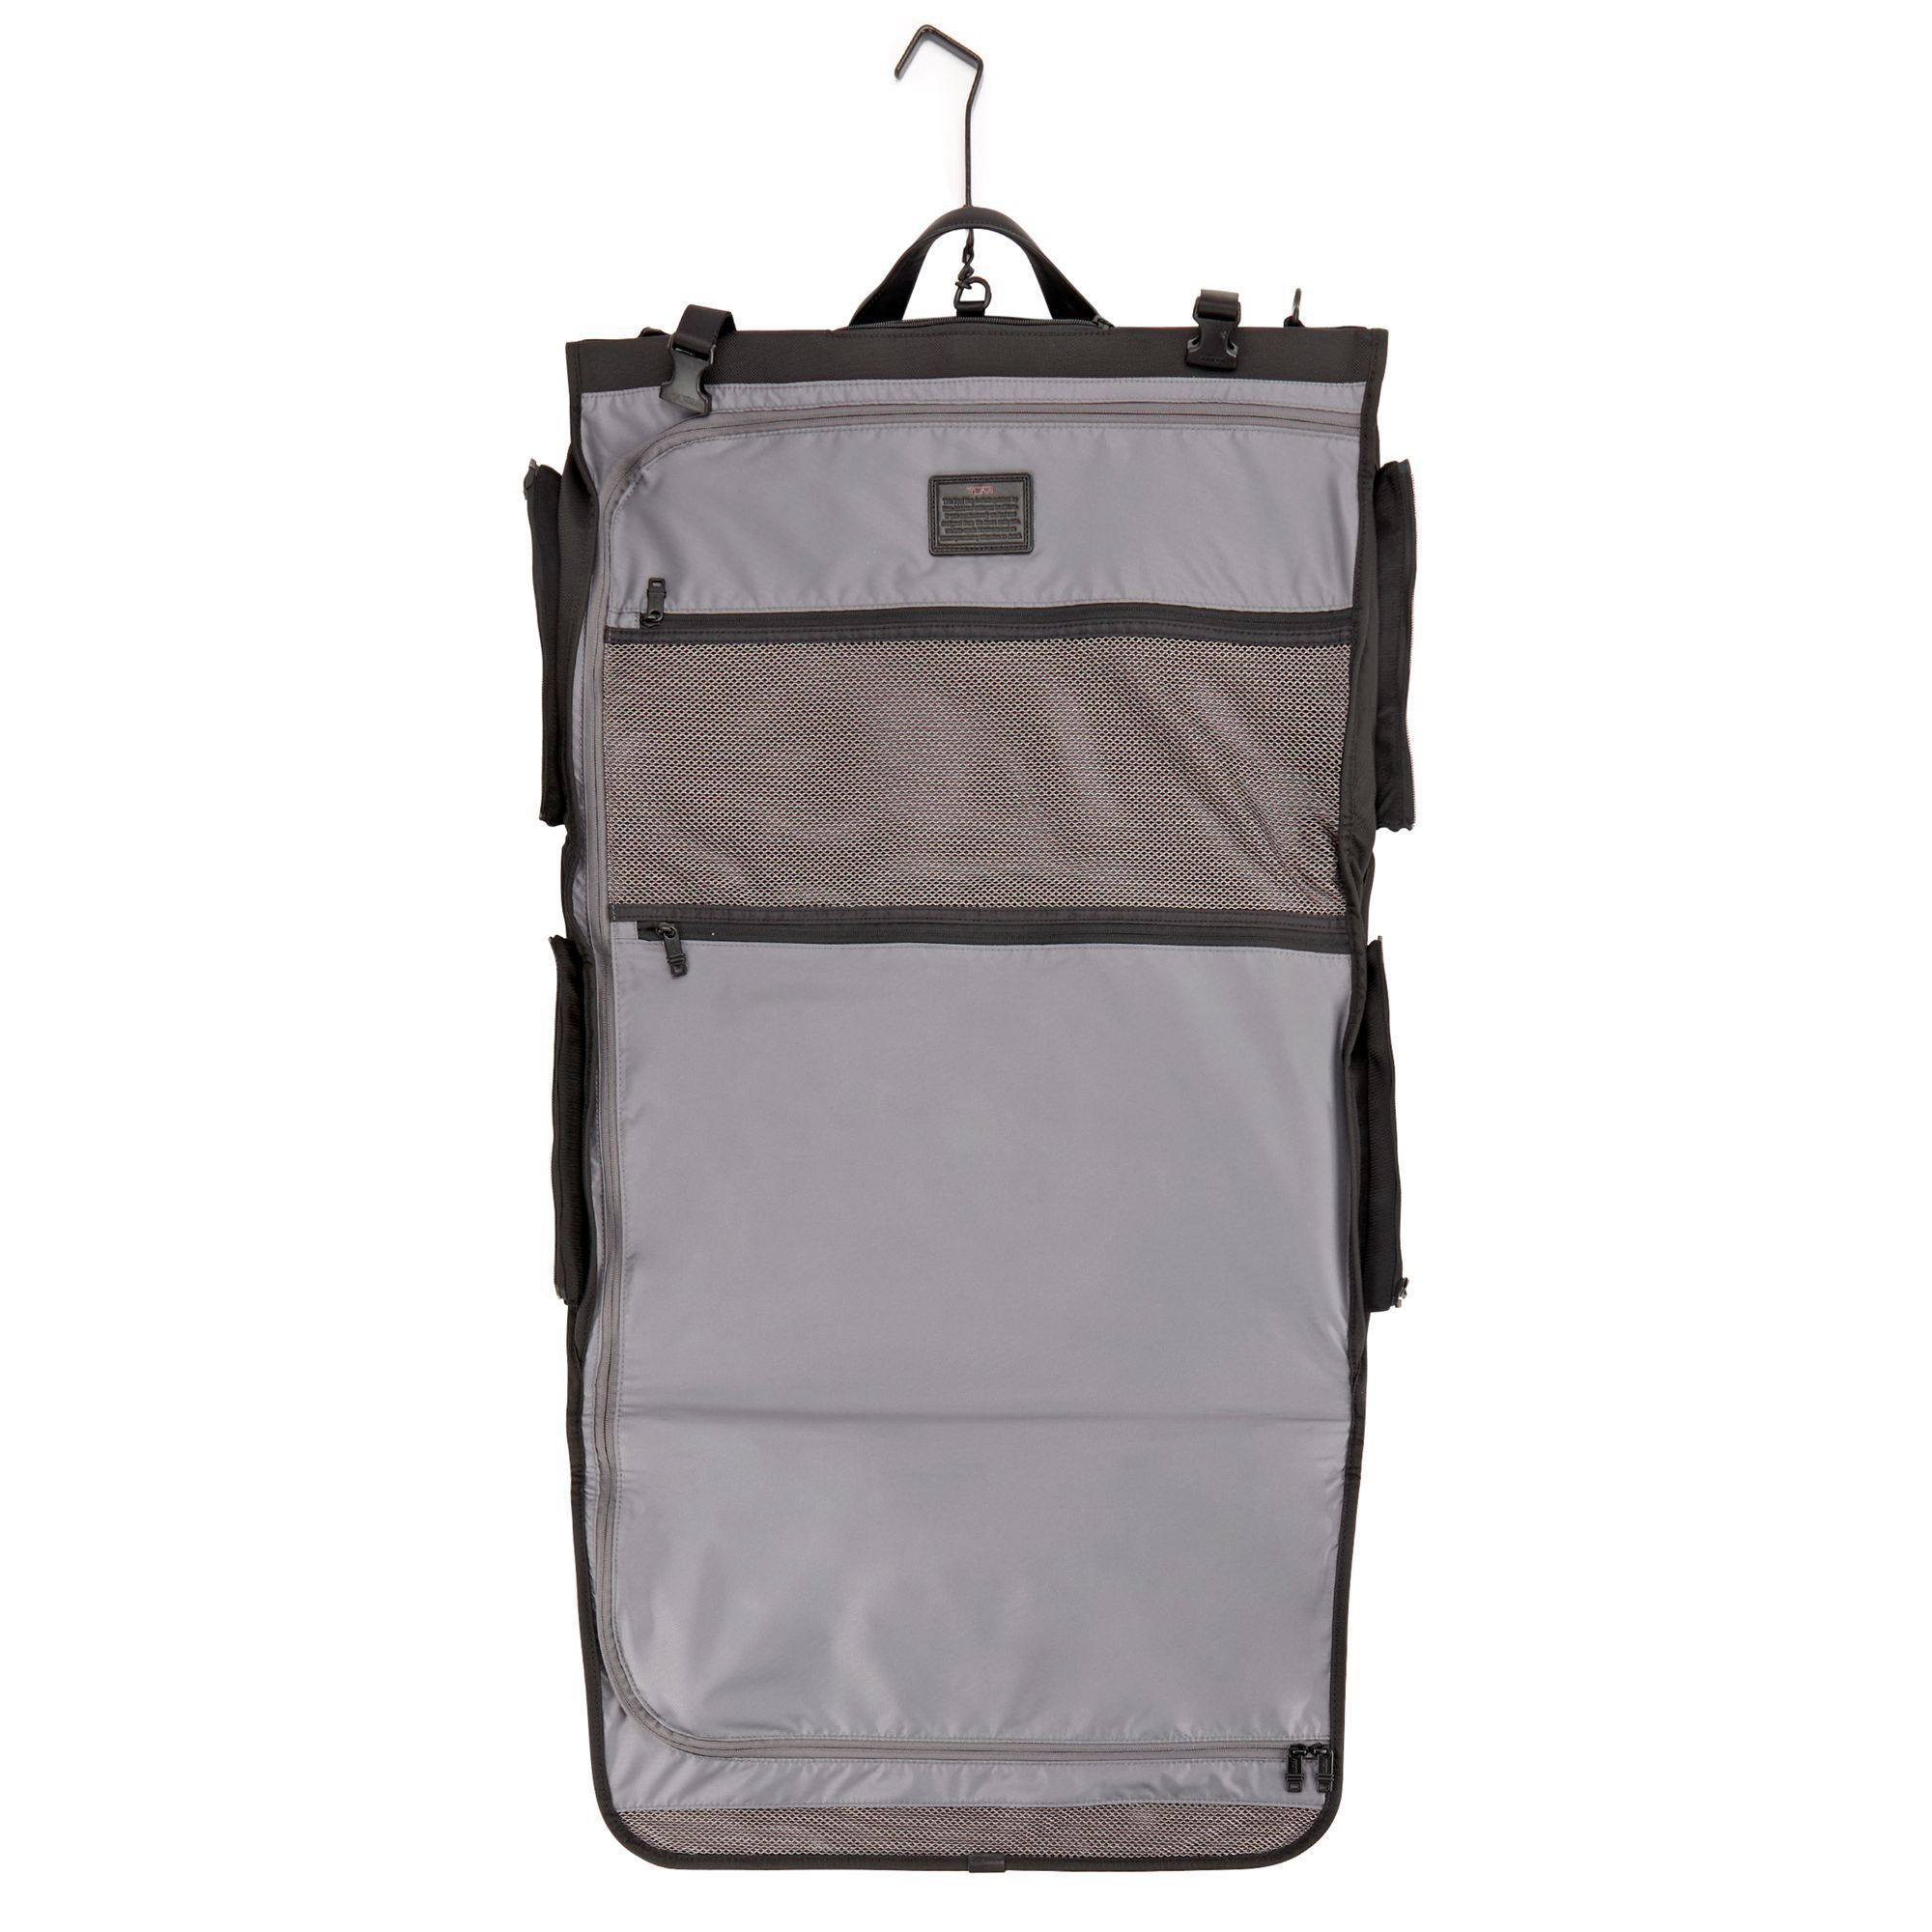 TUMI ALPHA 2 TRI-FOLD CARRY-ON GARMENT BAG #22137